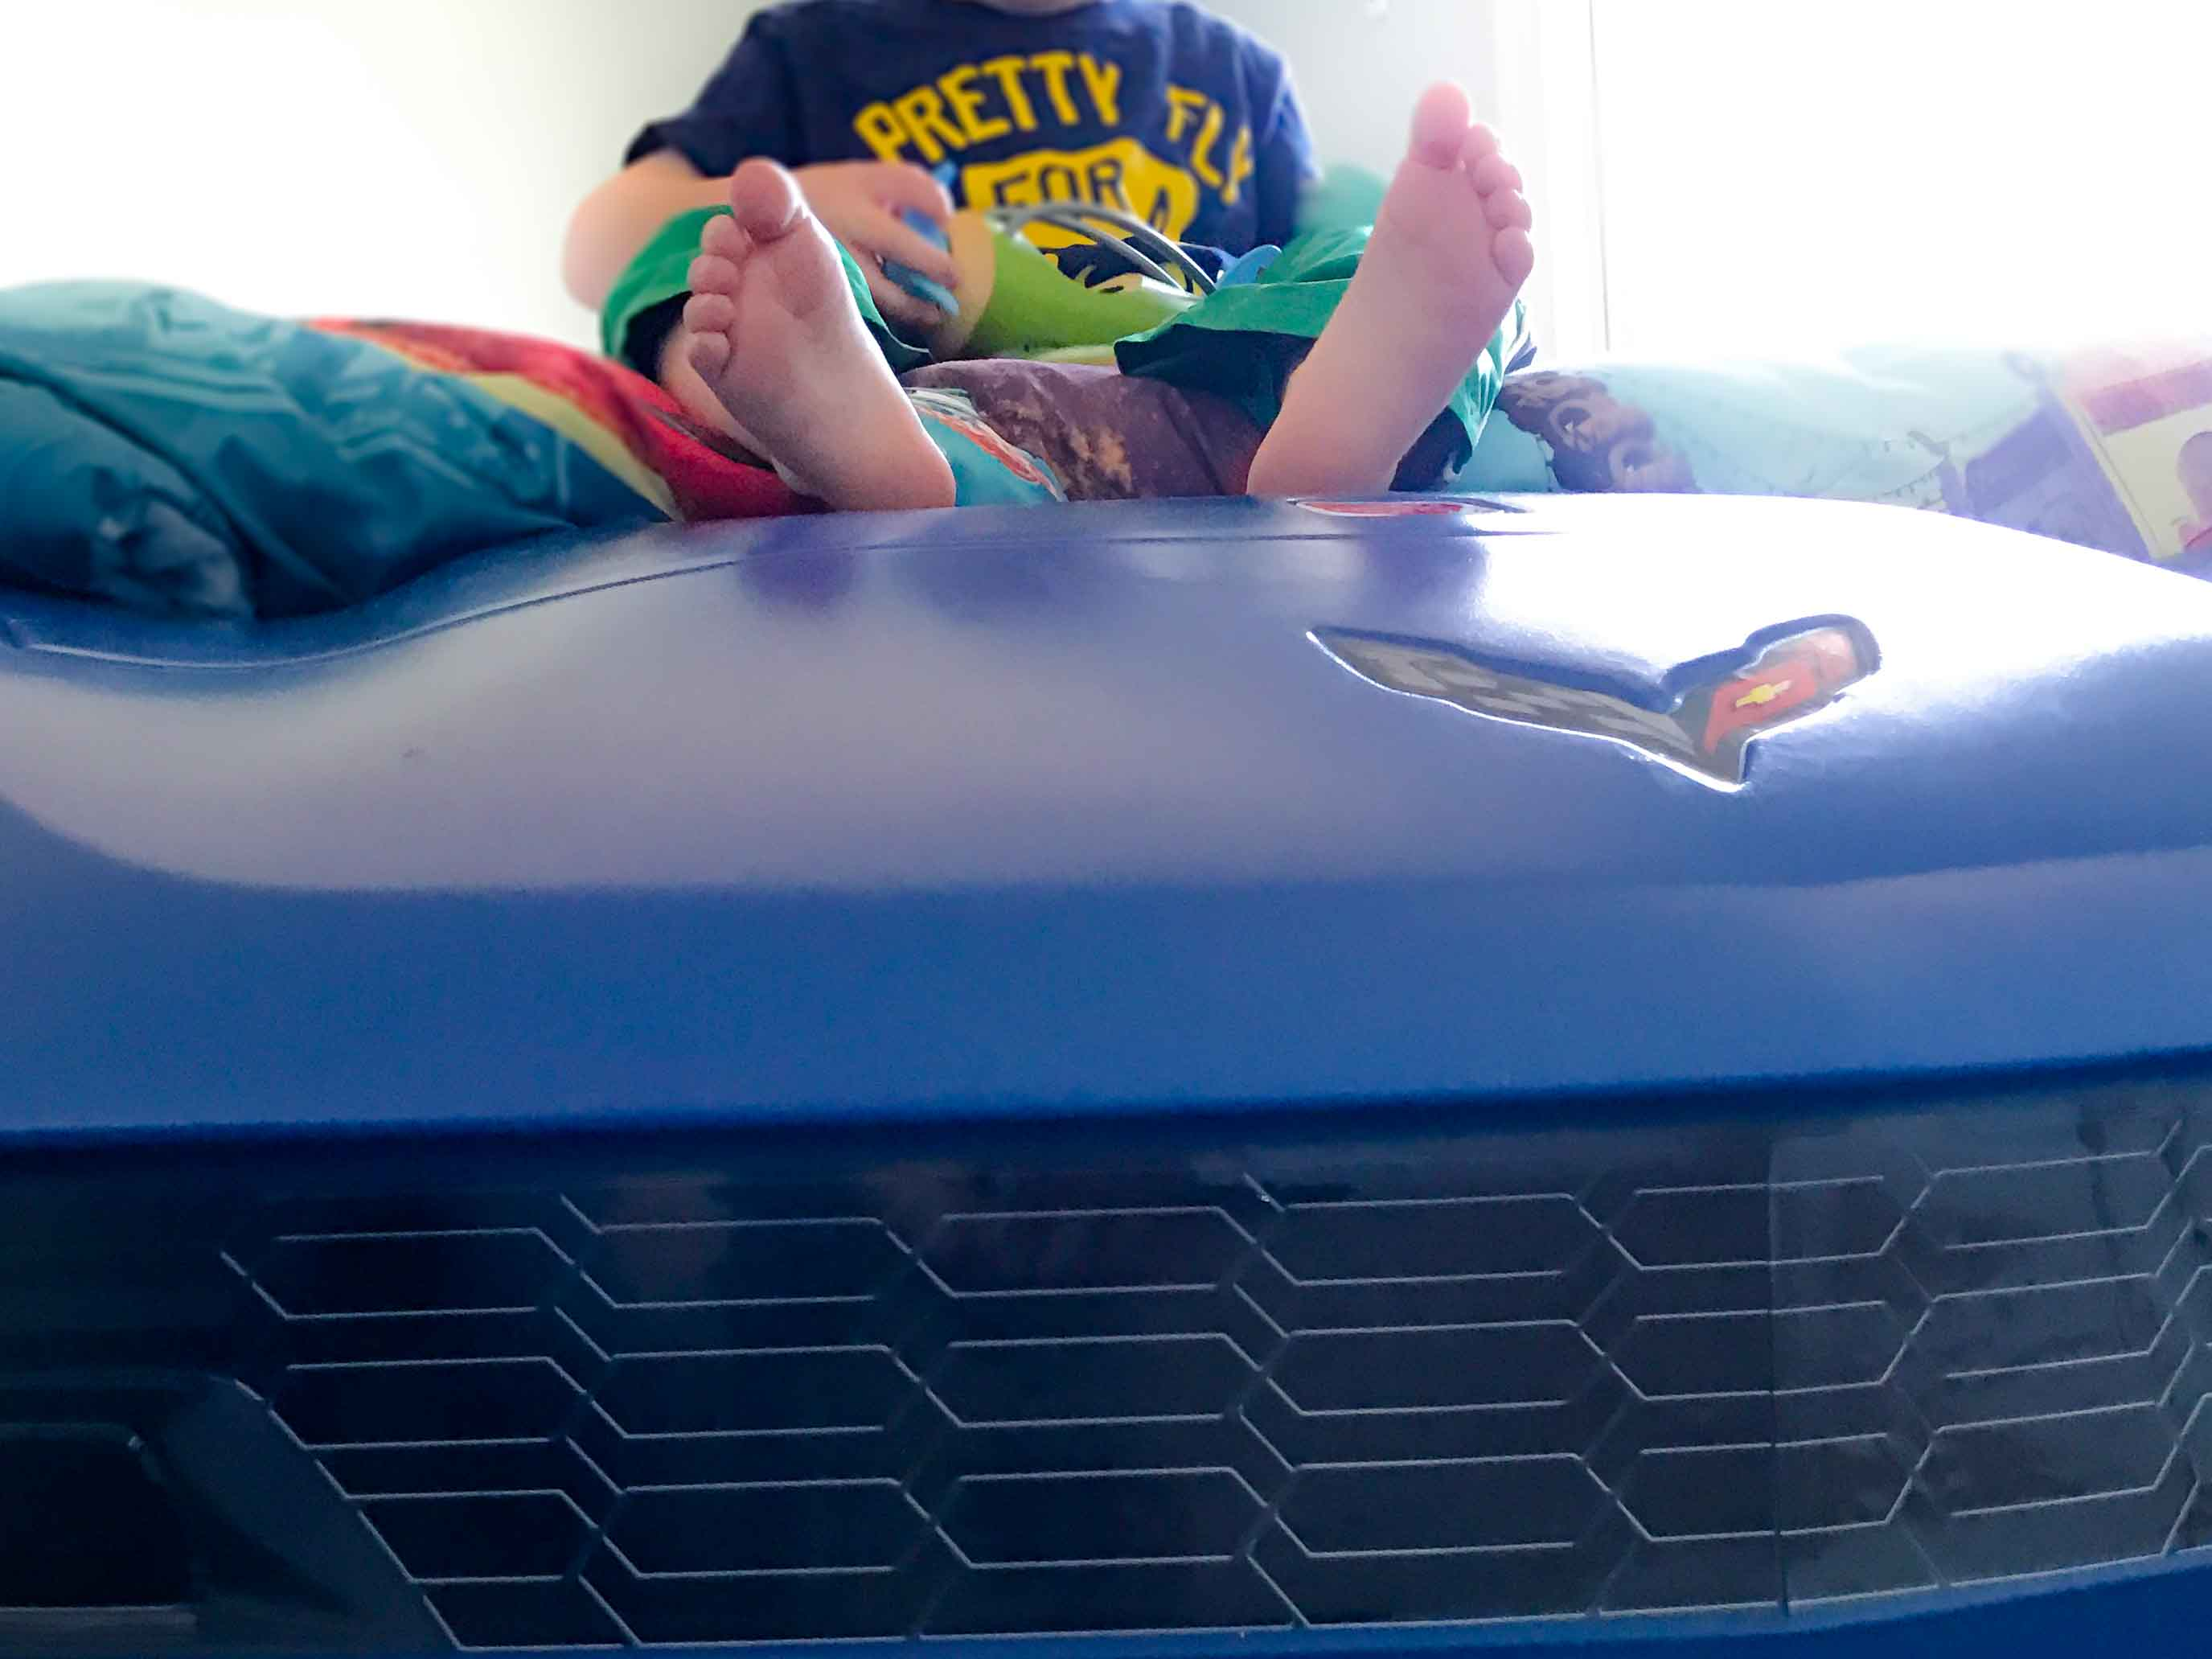 The grill and front of the blue race car bed.